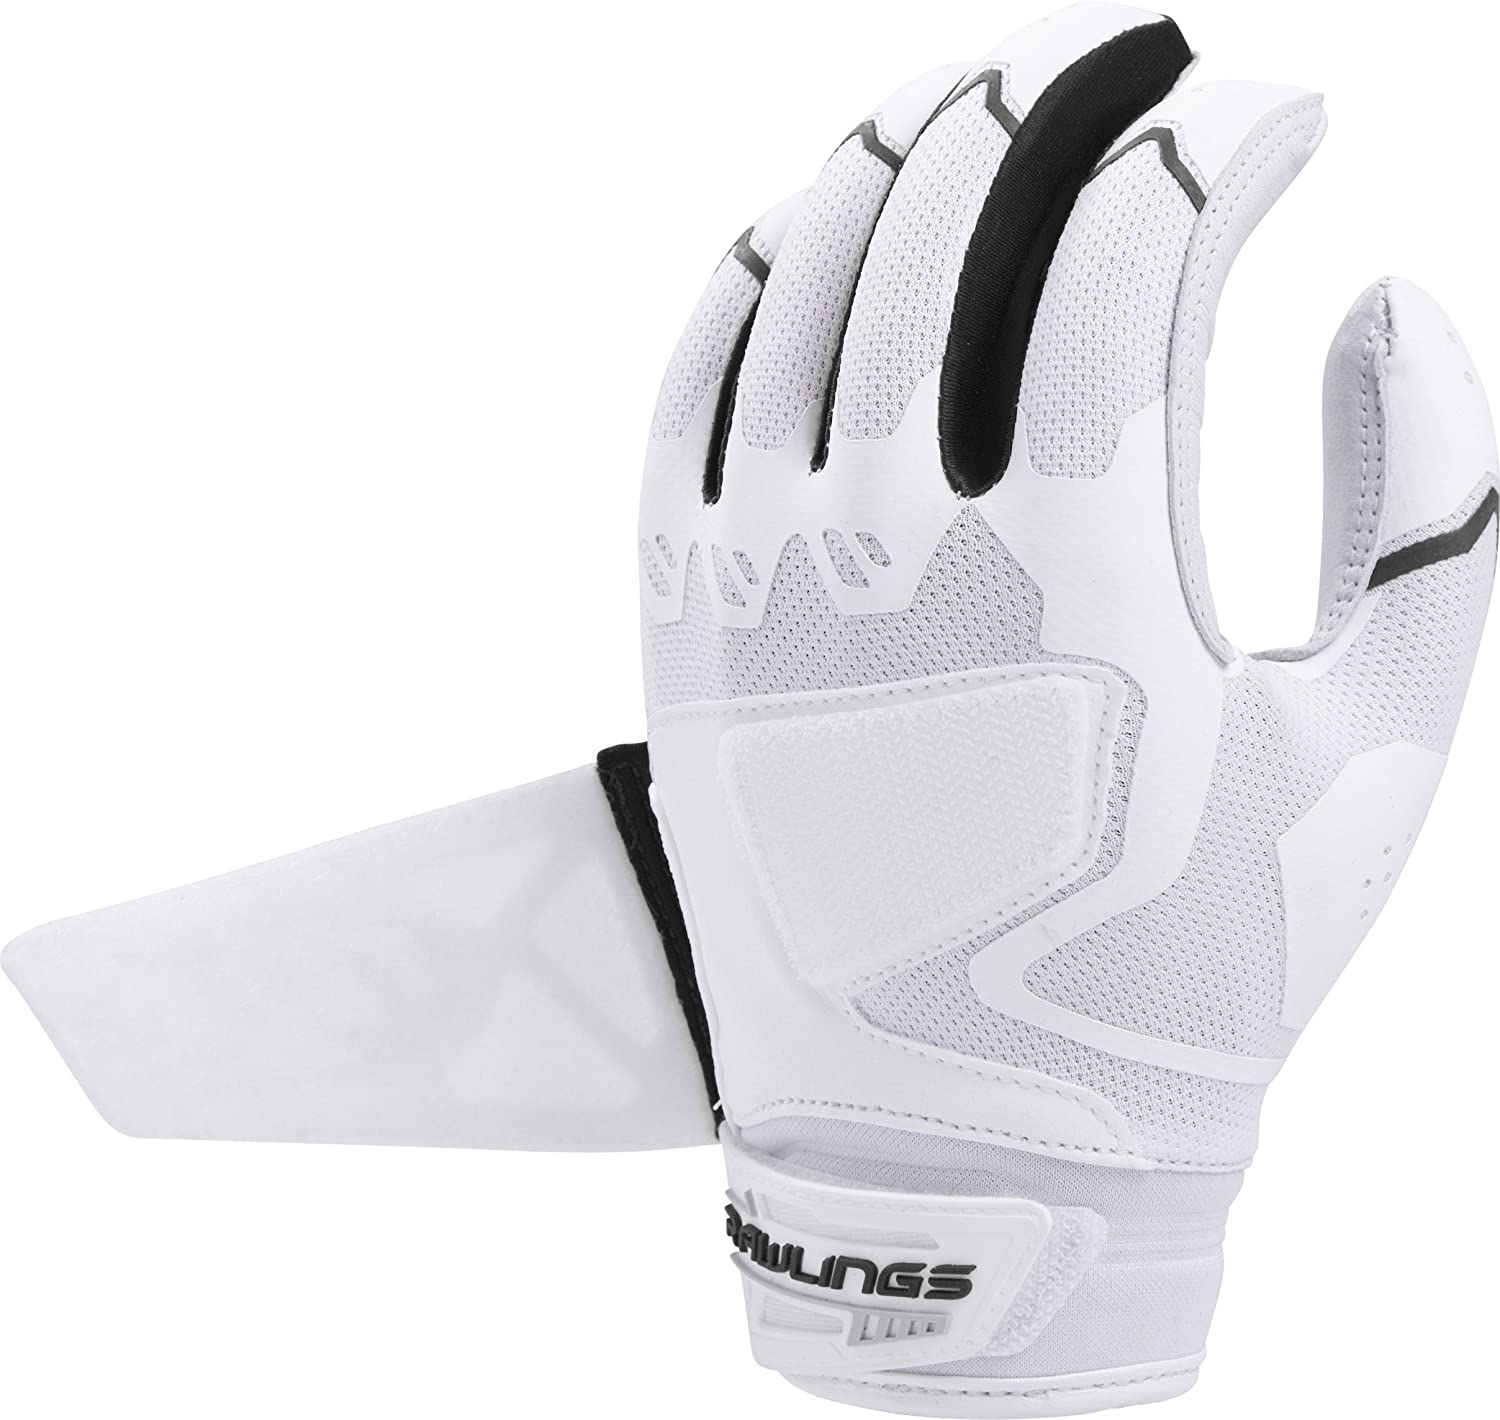 Rawlings FP Adult Workhorse PRO Batting Gloves